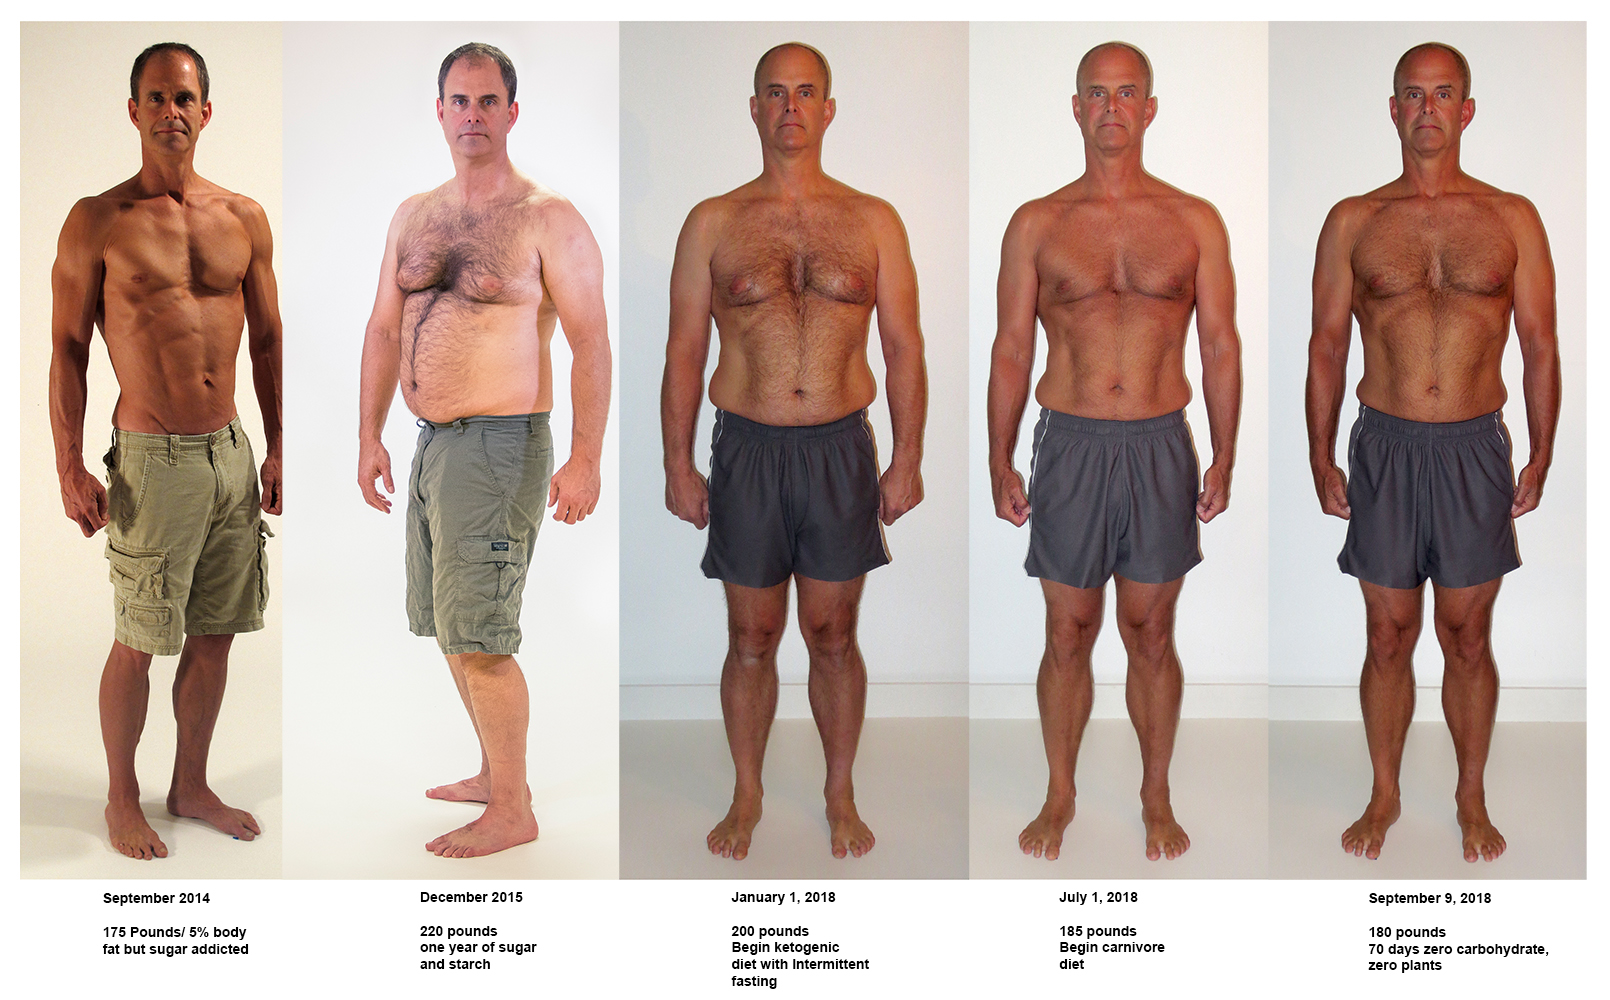 Ron Blouch from fit to fat to fit again via carbohydrate consumption then restriction